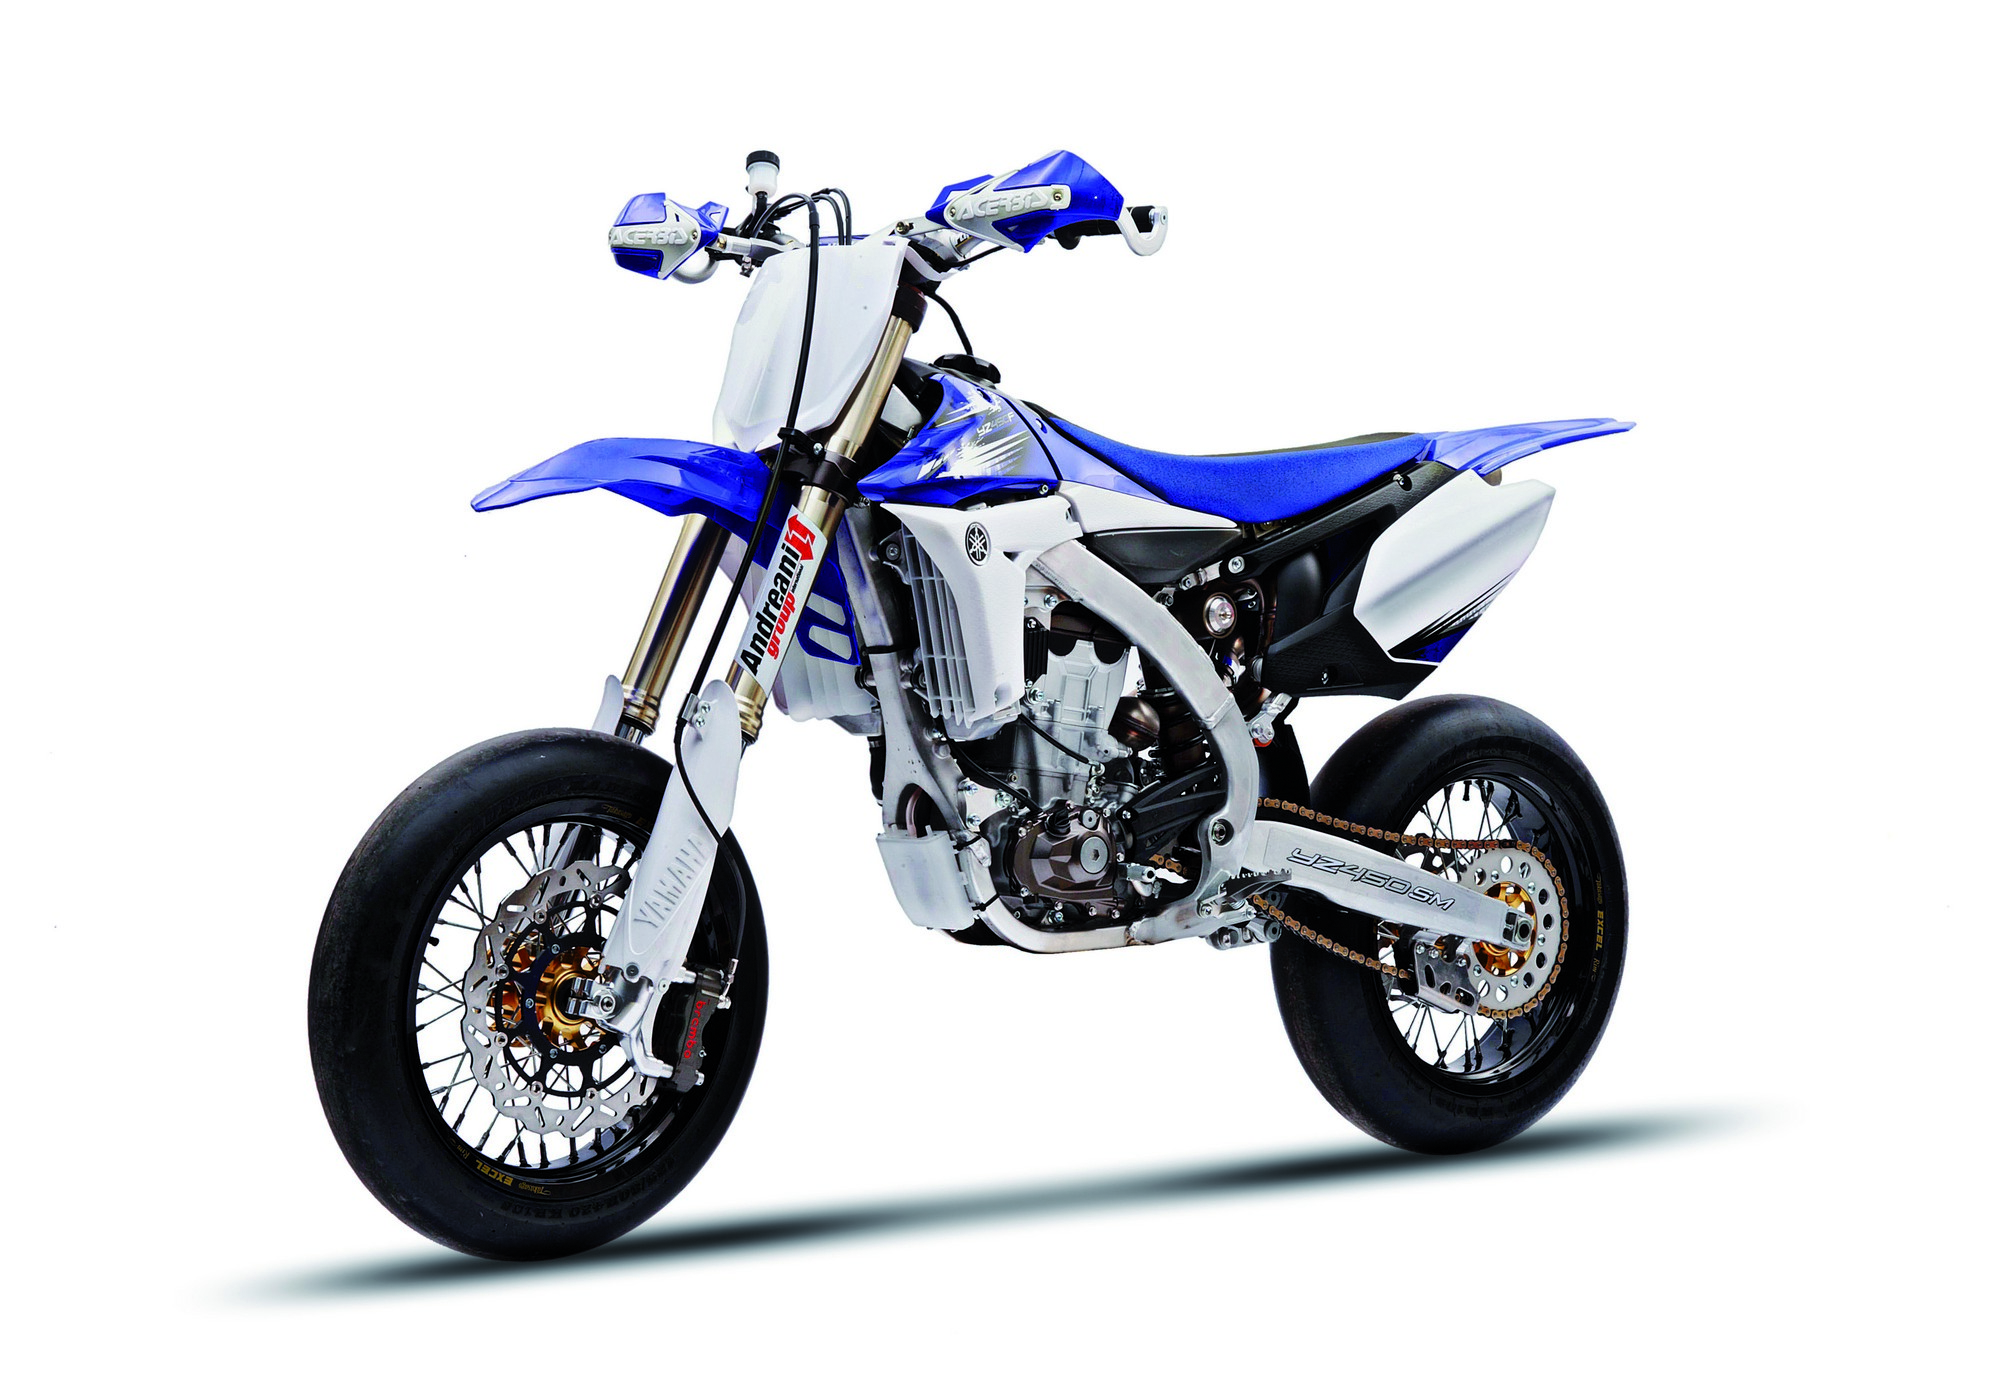 yamaha yz450sm raffinata motard da pista. Black Bedroom Furniture Sets. Home Design Ideas